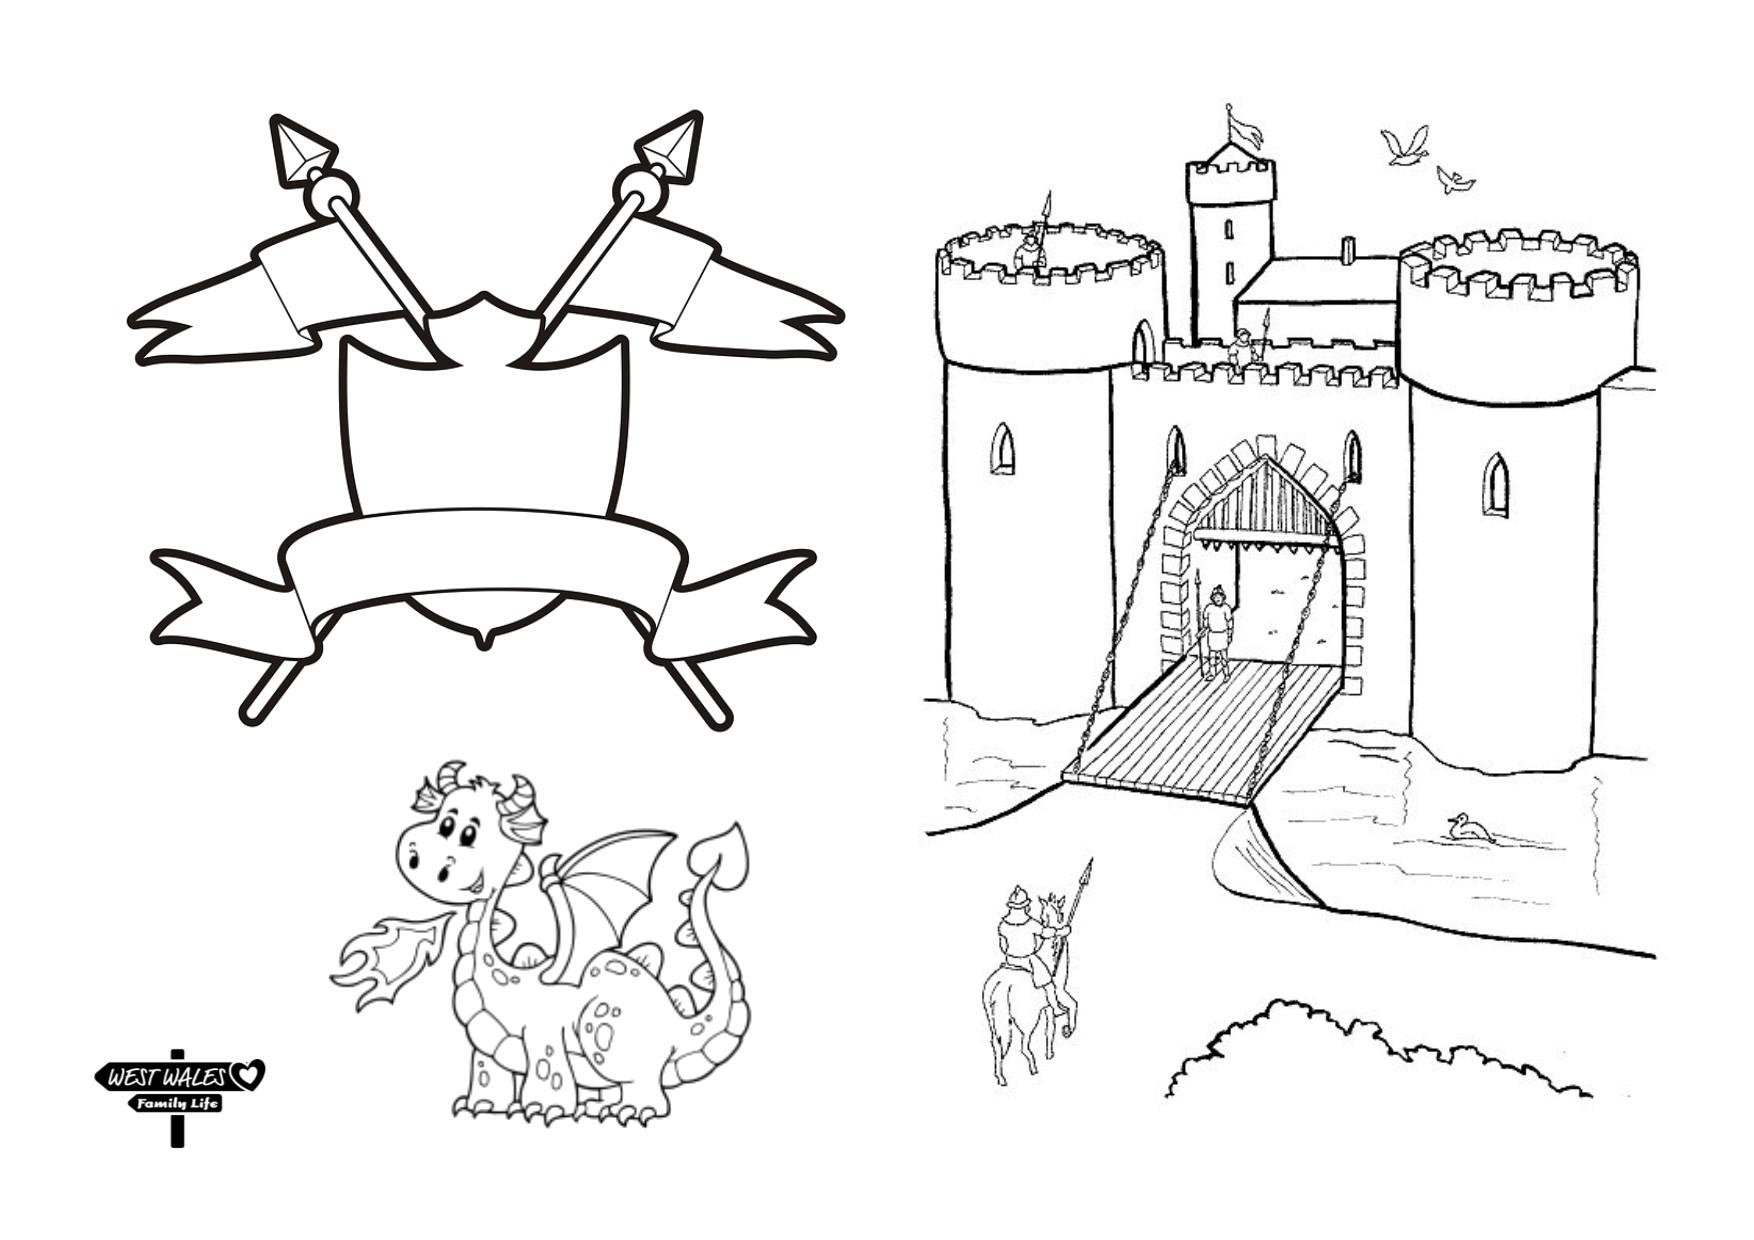 West Wales Family Life Printable St Davids Day Colouring Sheets for the Kids Page 5